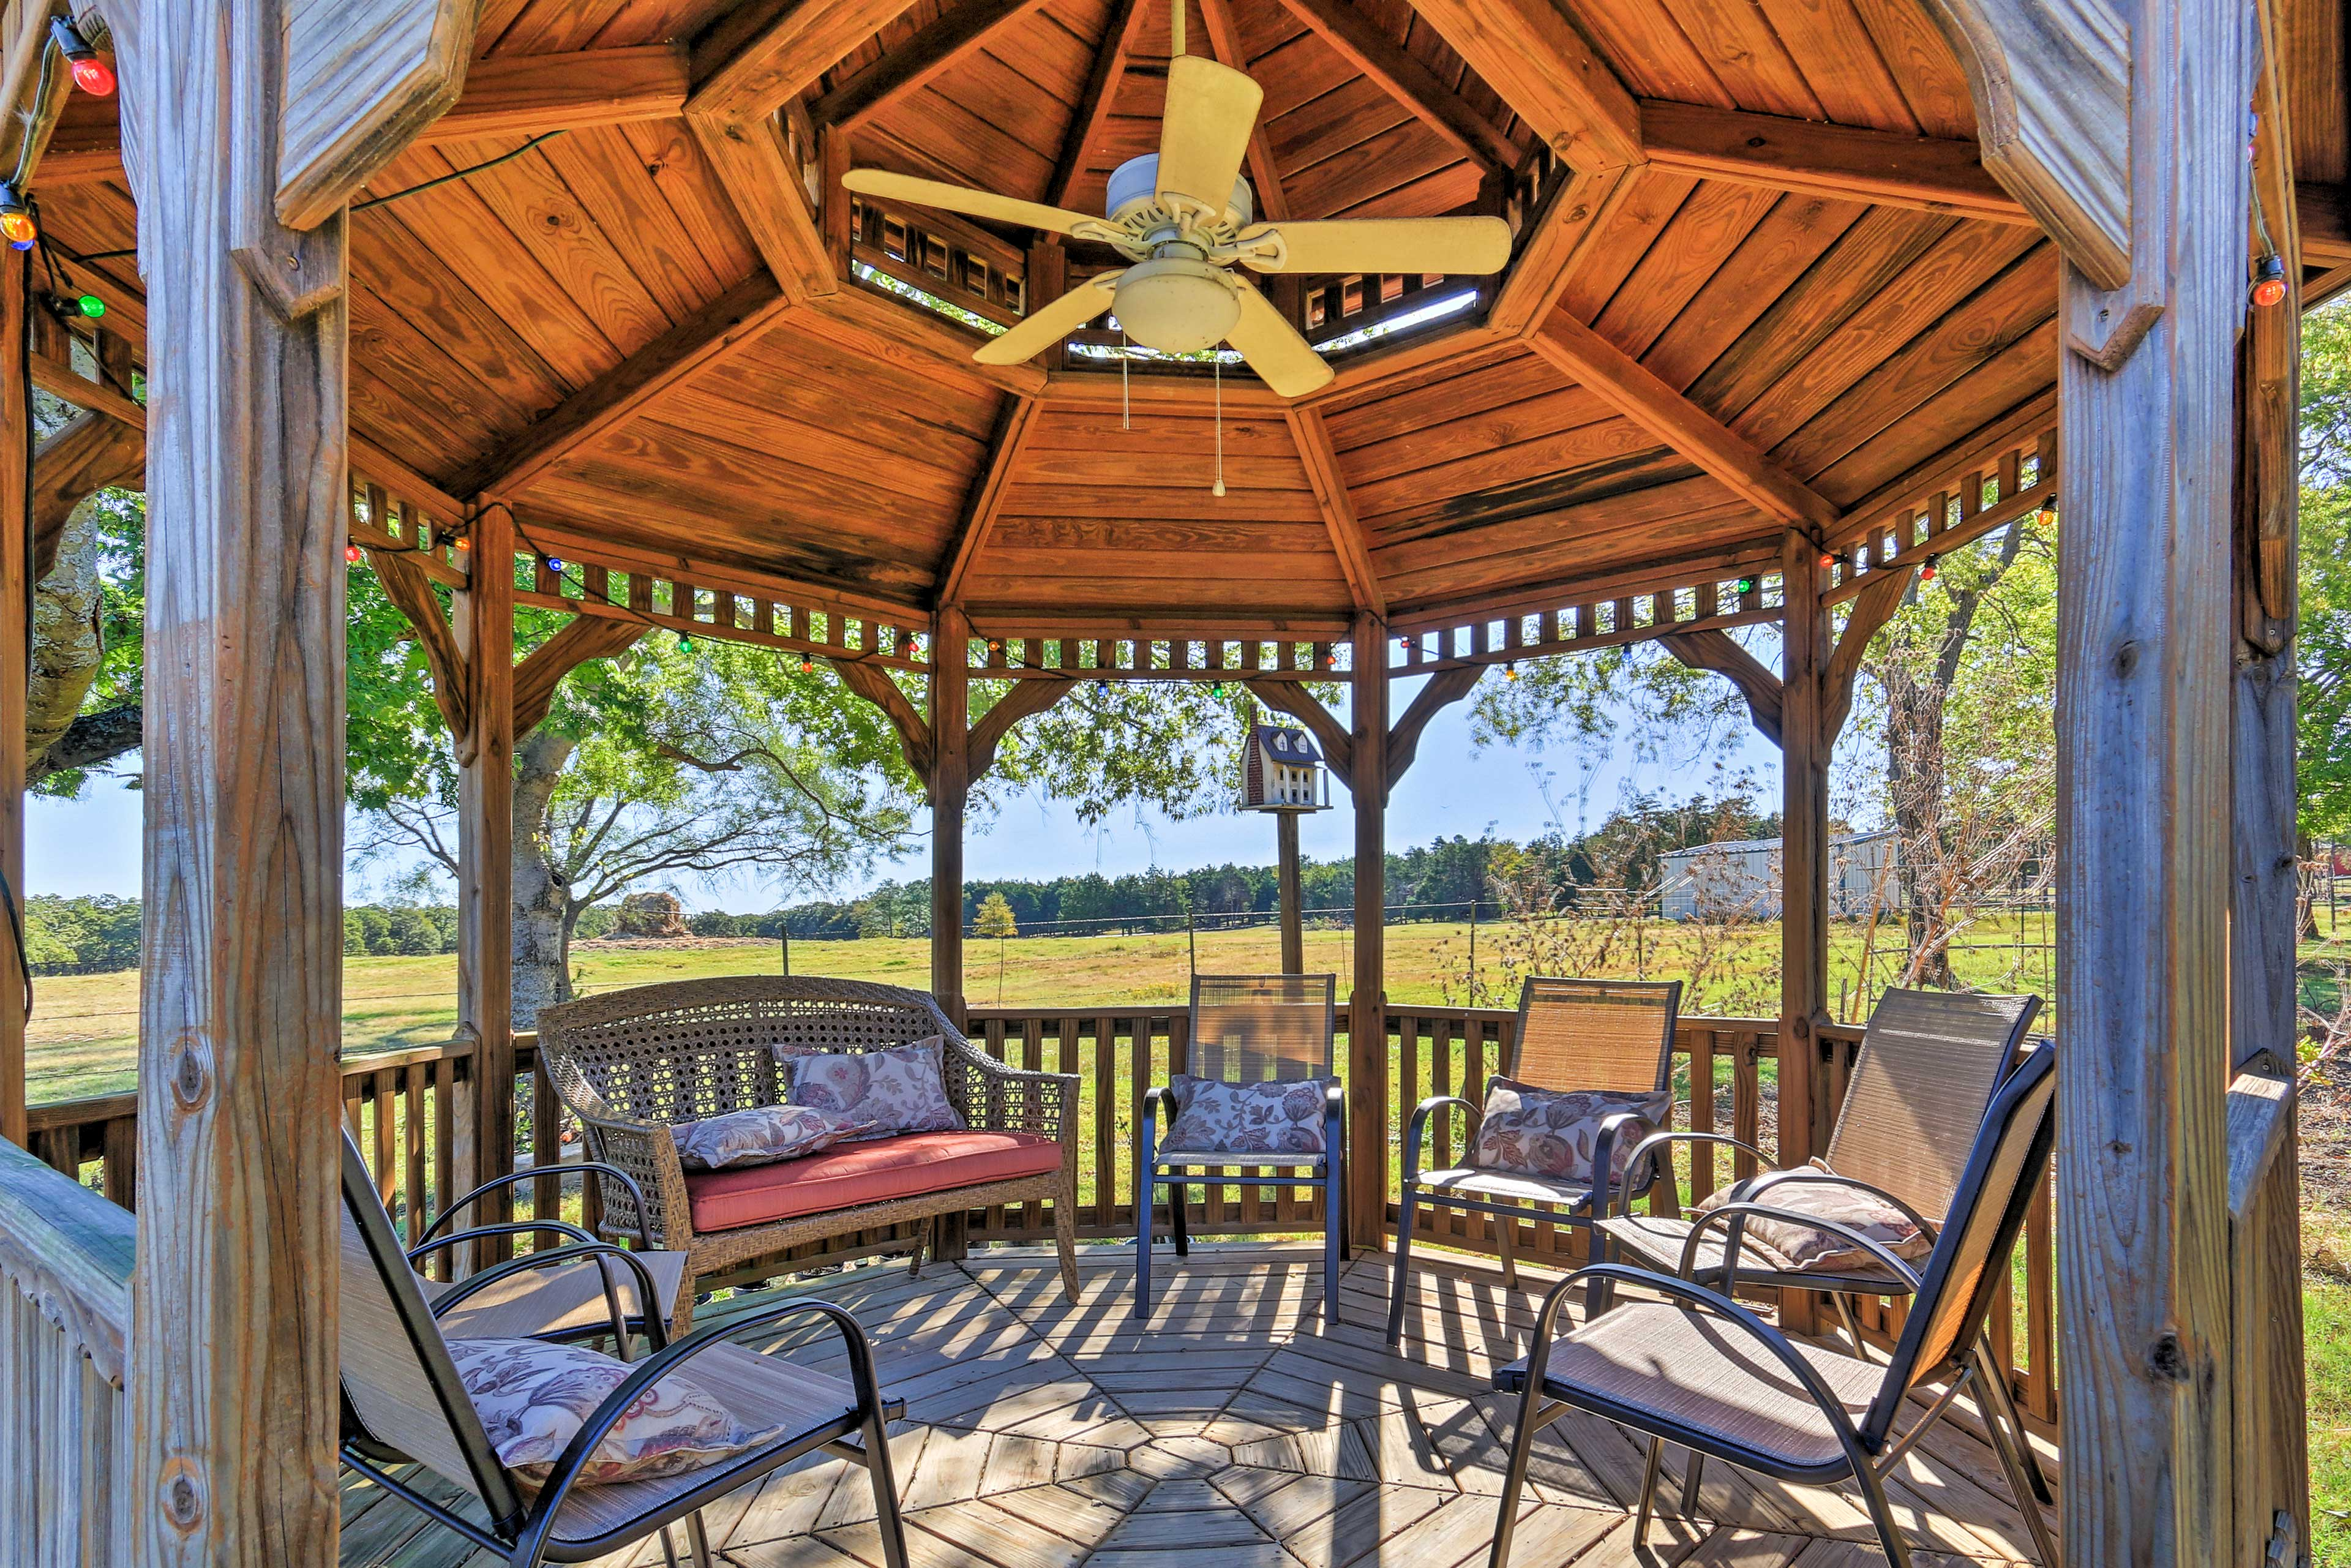 Sip on some wine and relax in the charming gazebo.